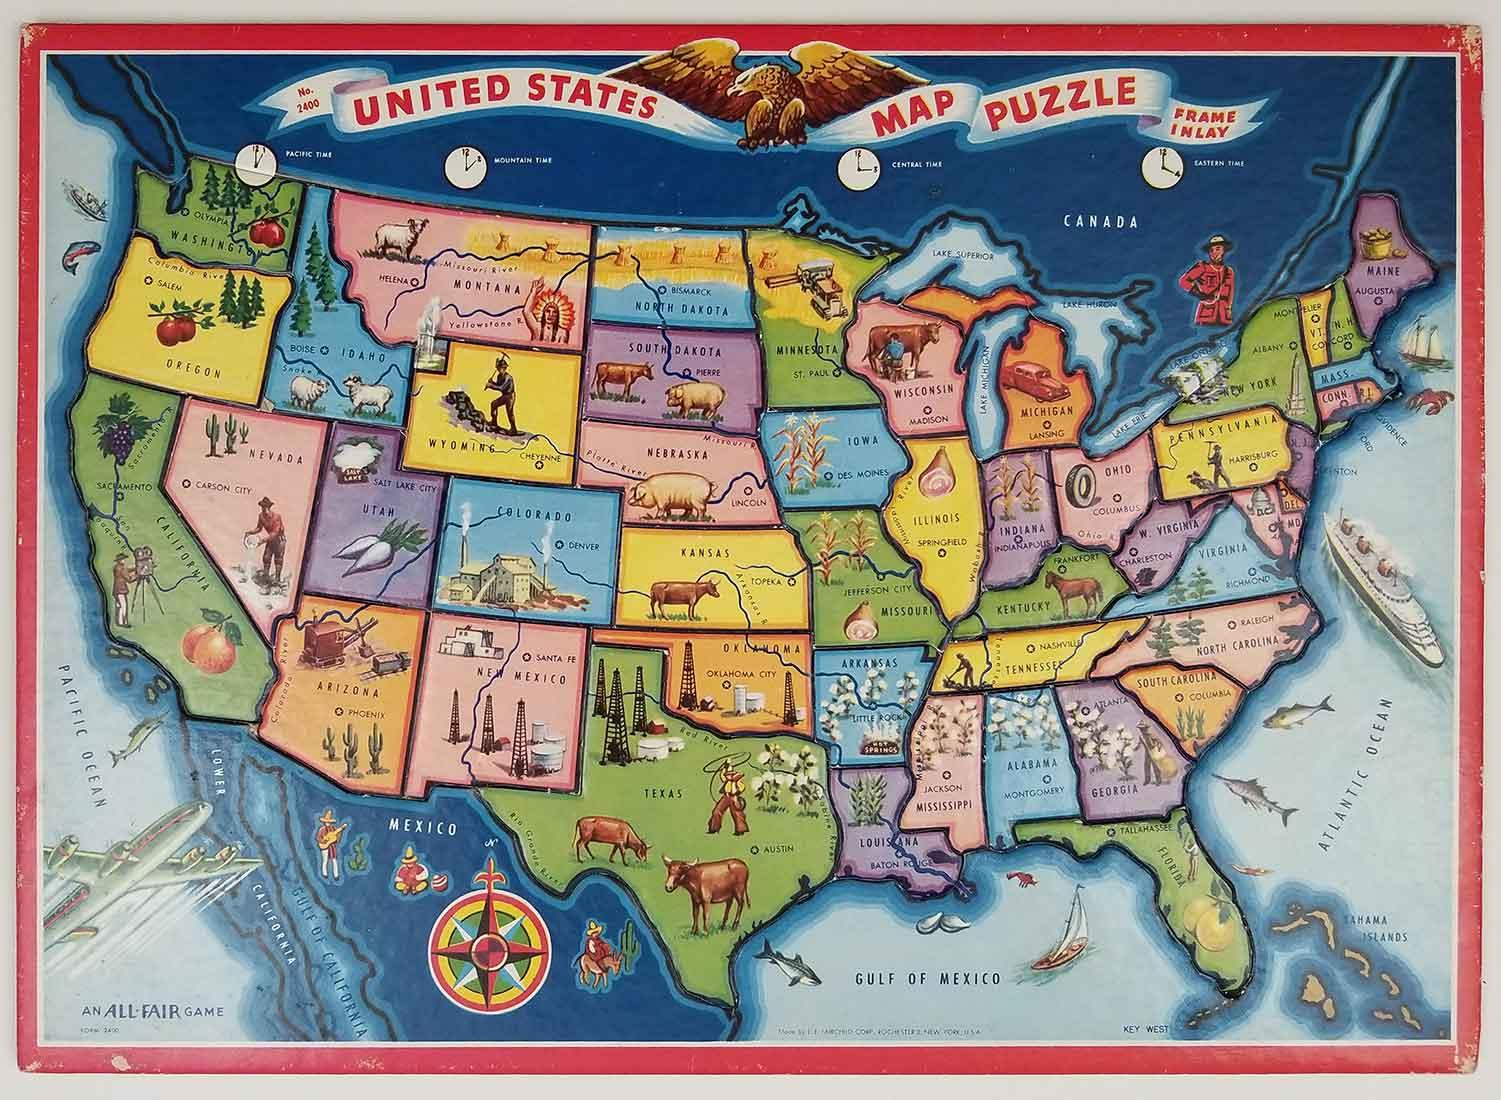 United States Map Puzzle Frame Inlay By United States